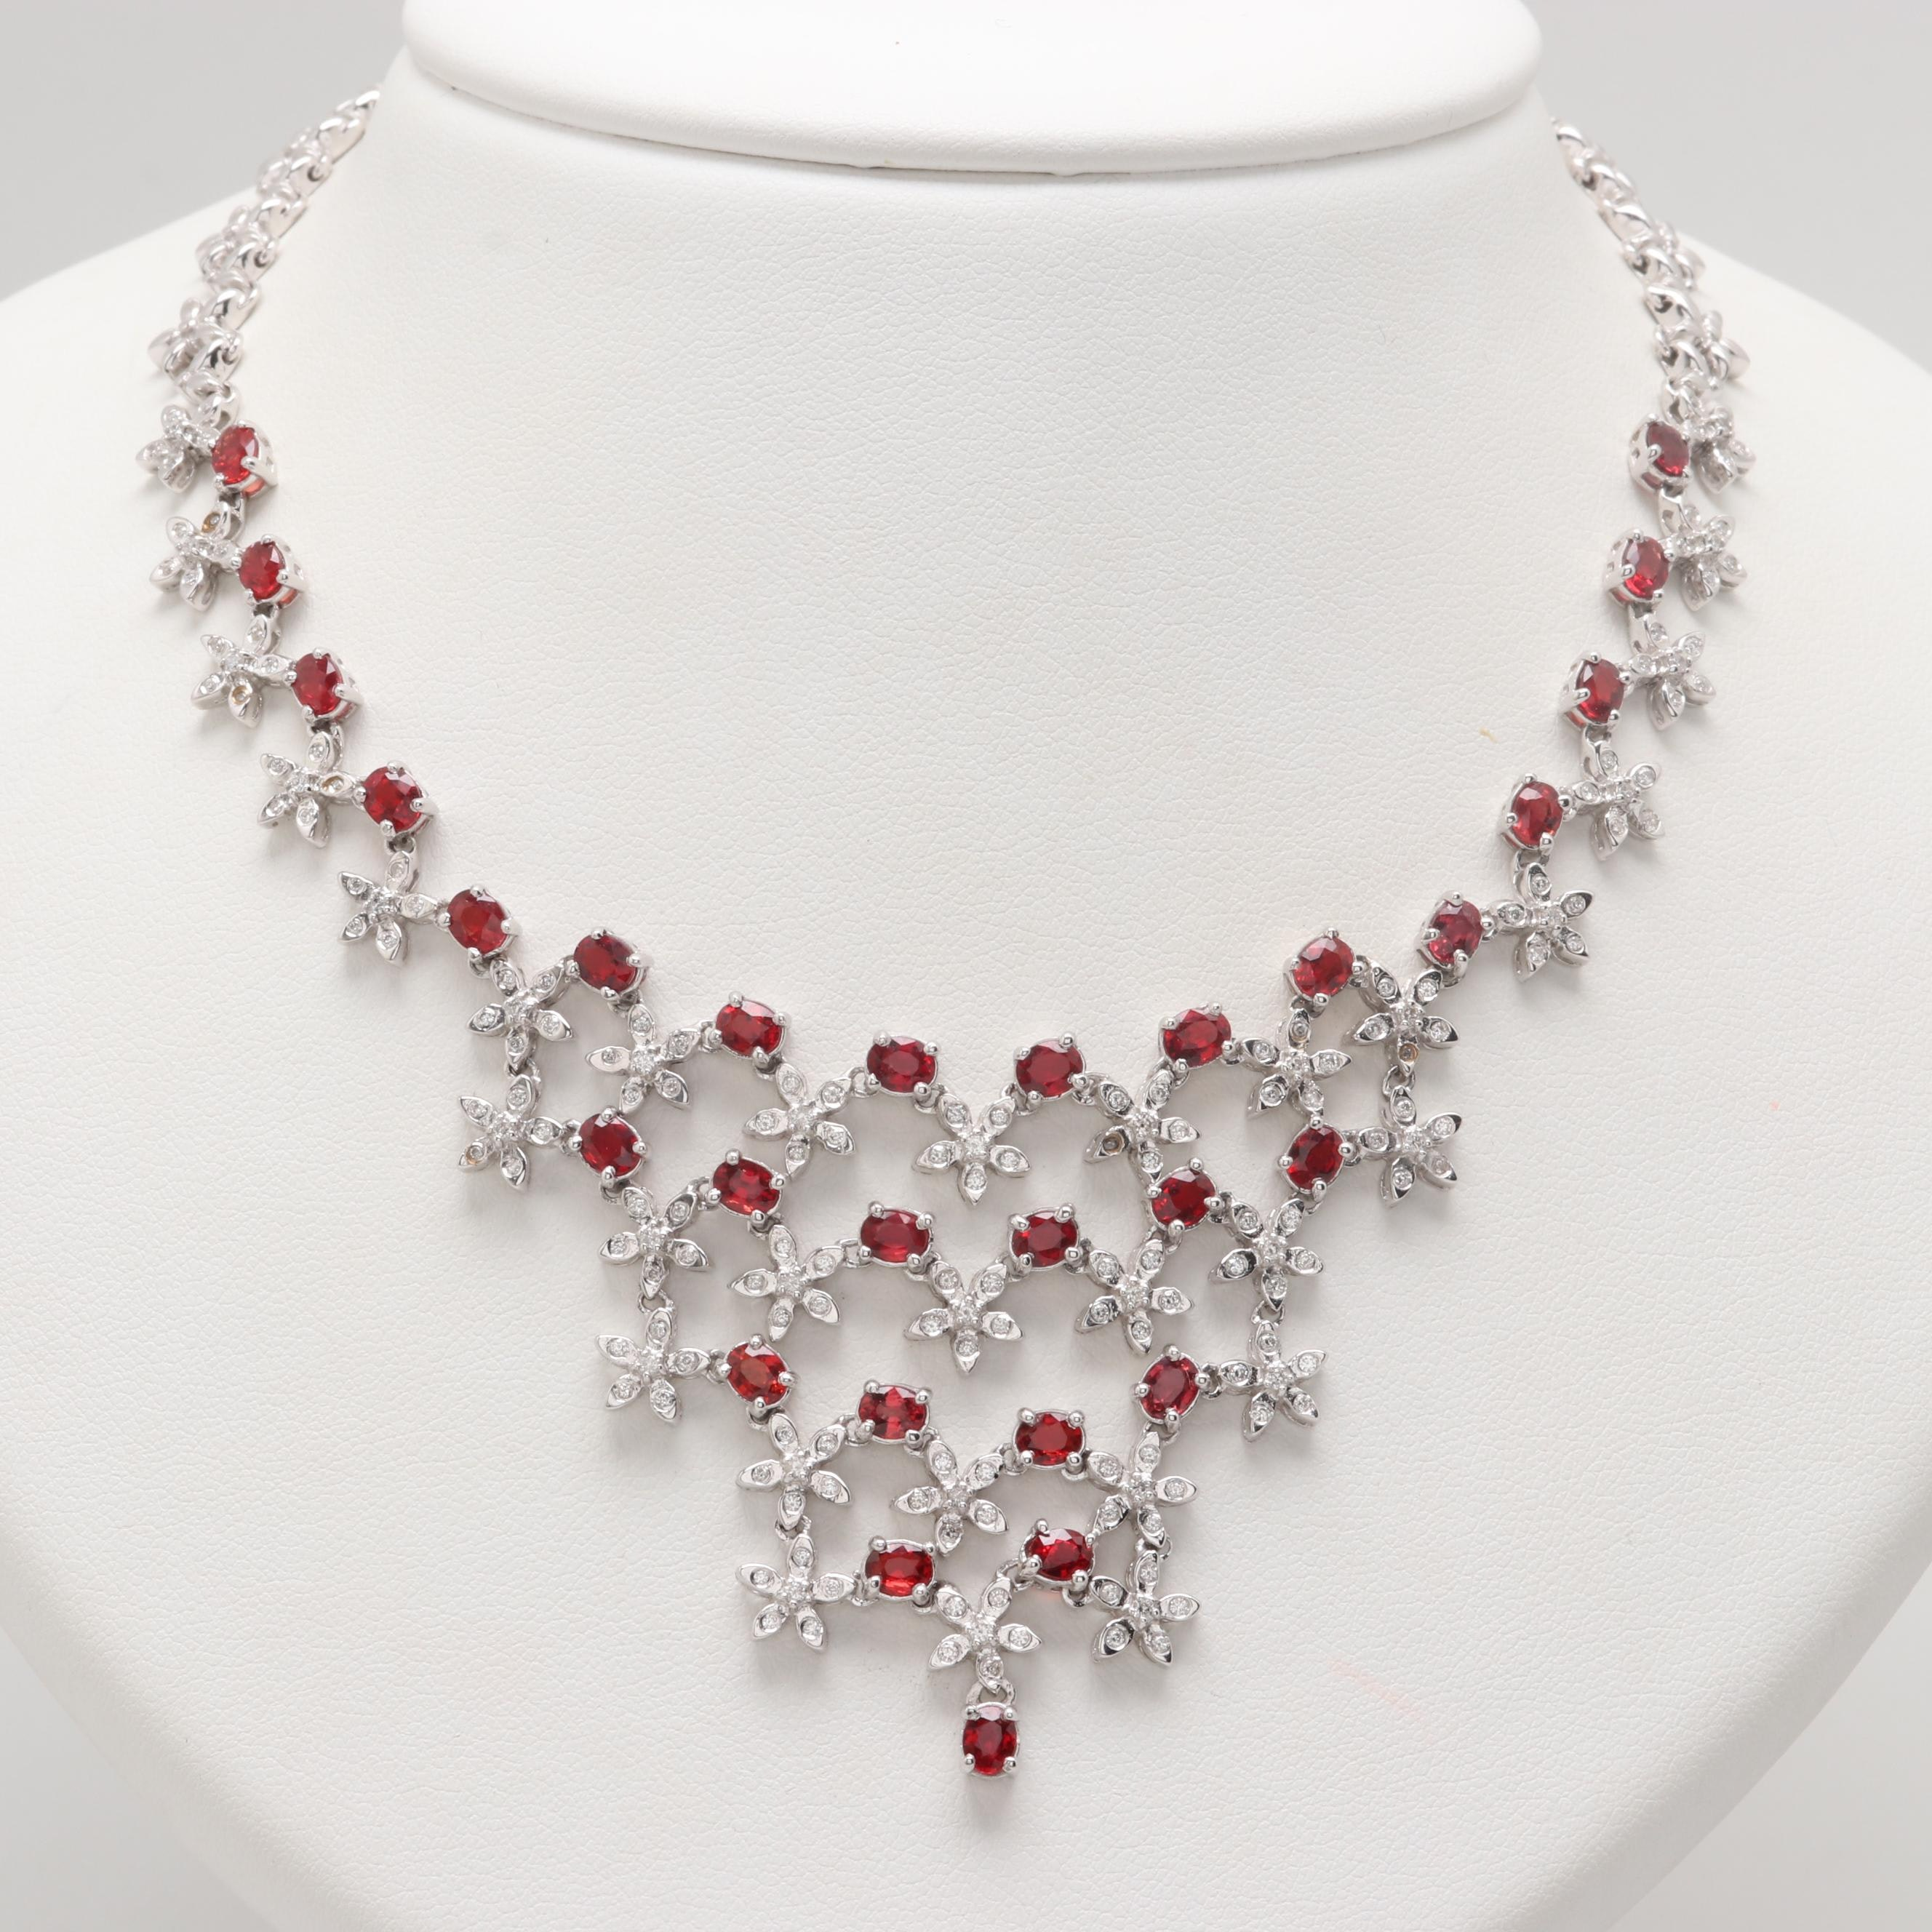 18K White Gold Ruby and 1.06 CTW Diamond Bib Necklace